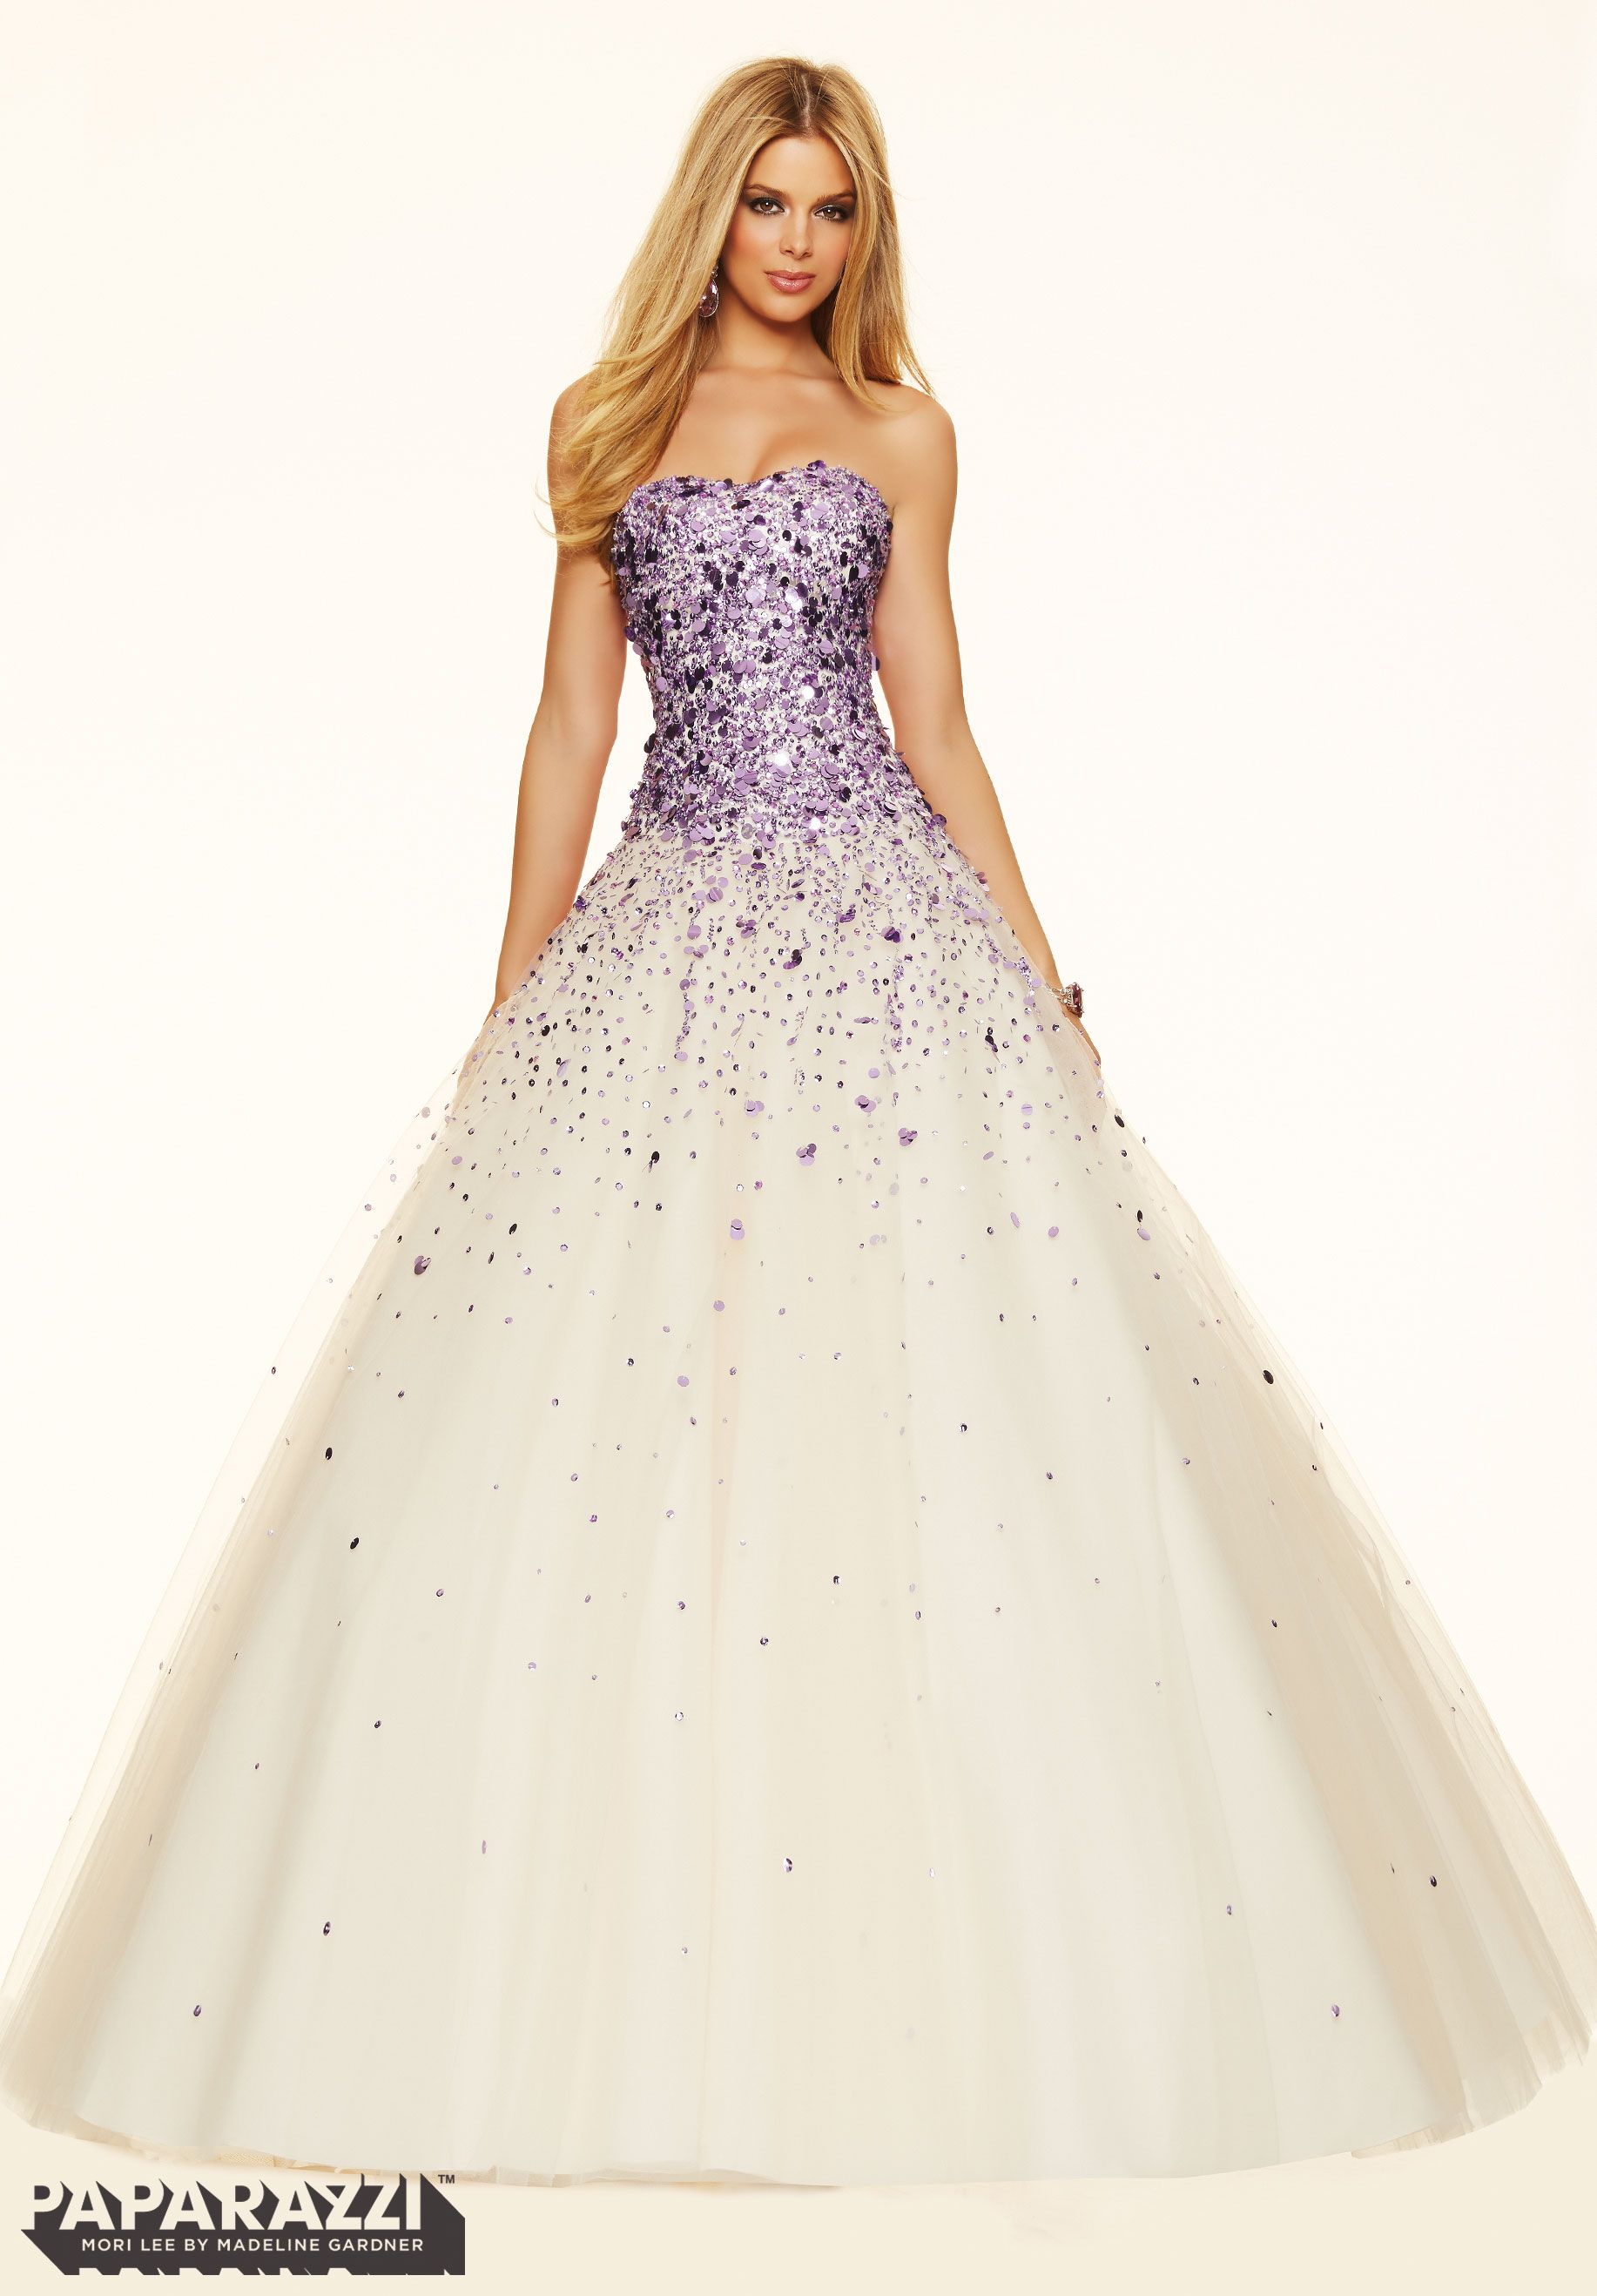 Prom Dresses by Paparazzi Prom - Dress Style 98021   PROM ...